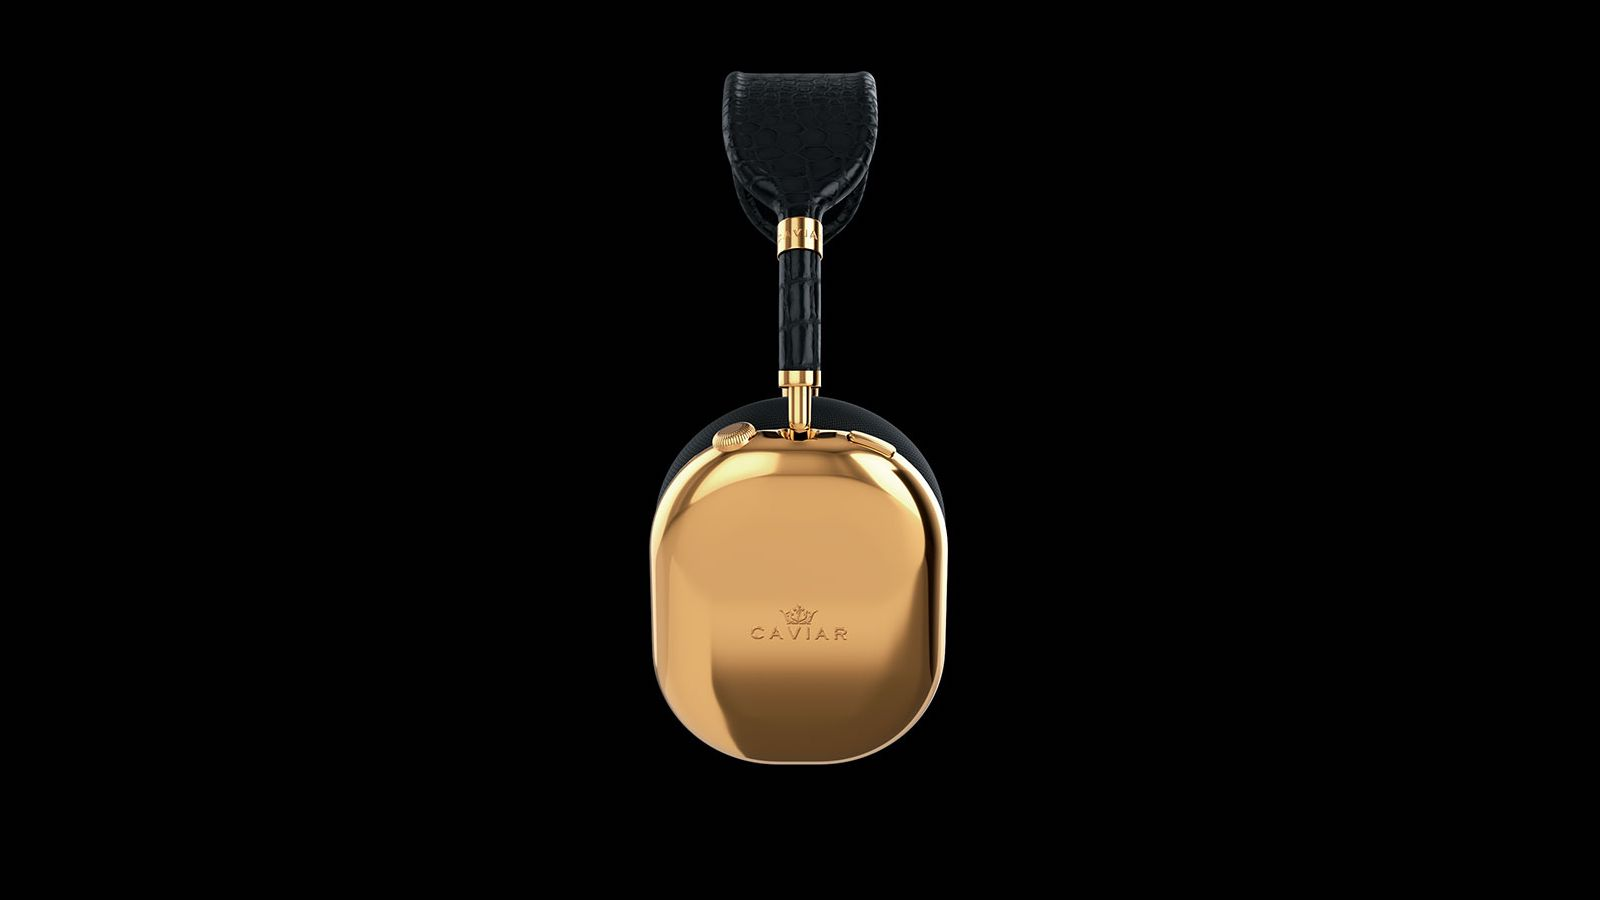 Caviar AirPods Max Golden Black features earcups made from 750 grams of pure gold